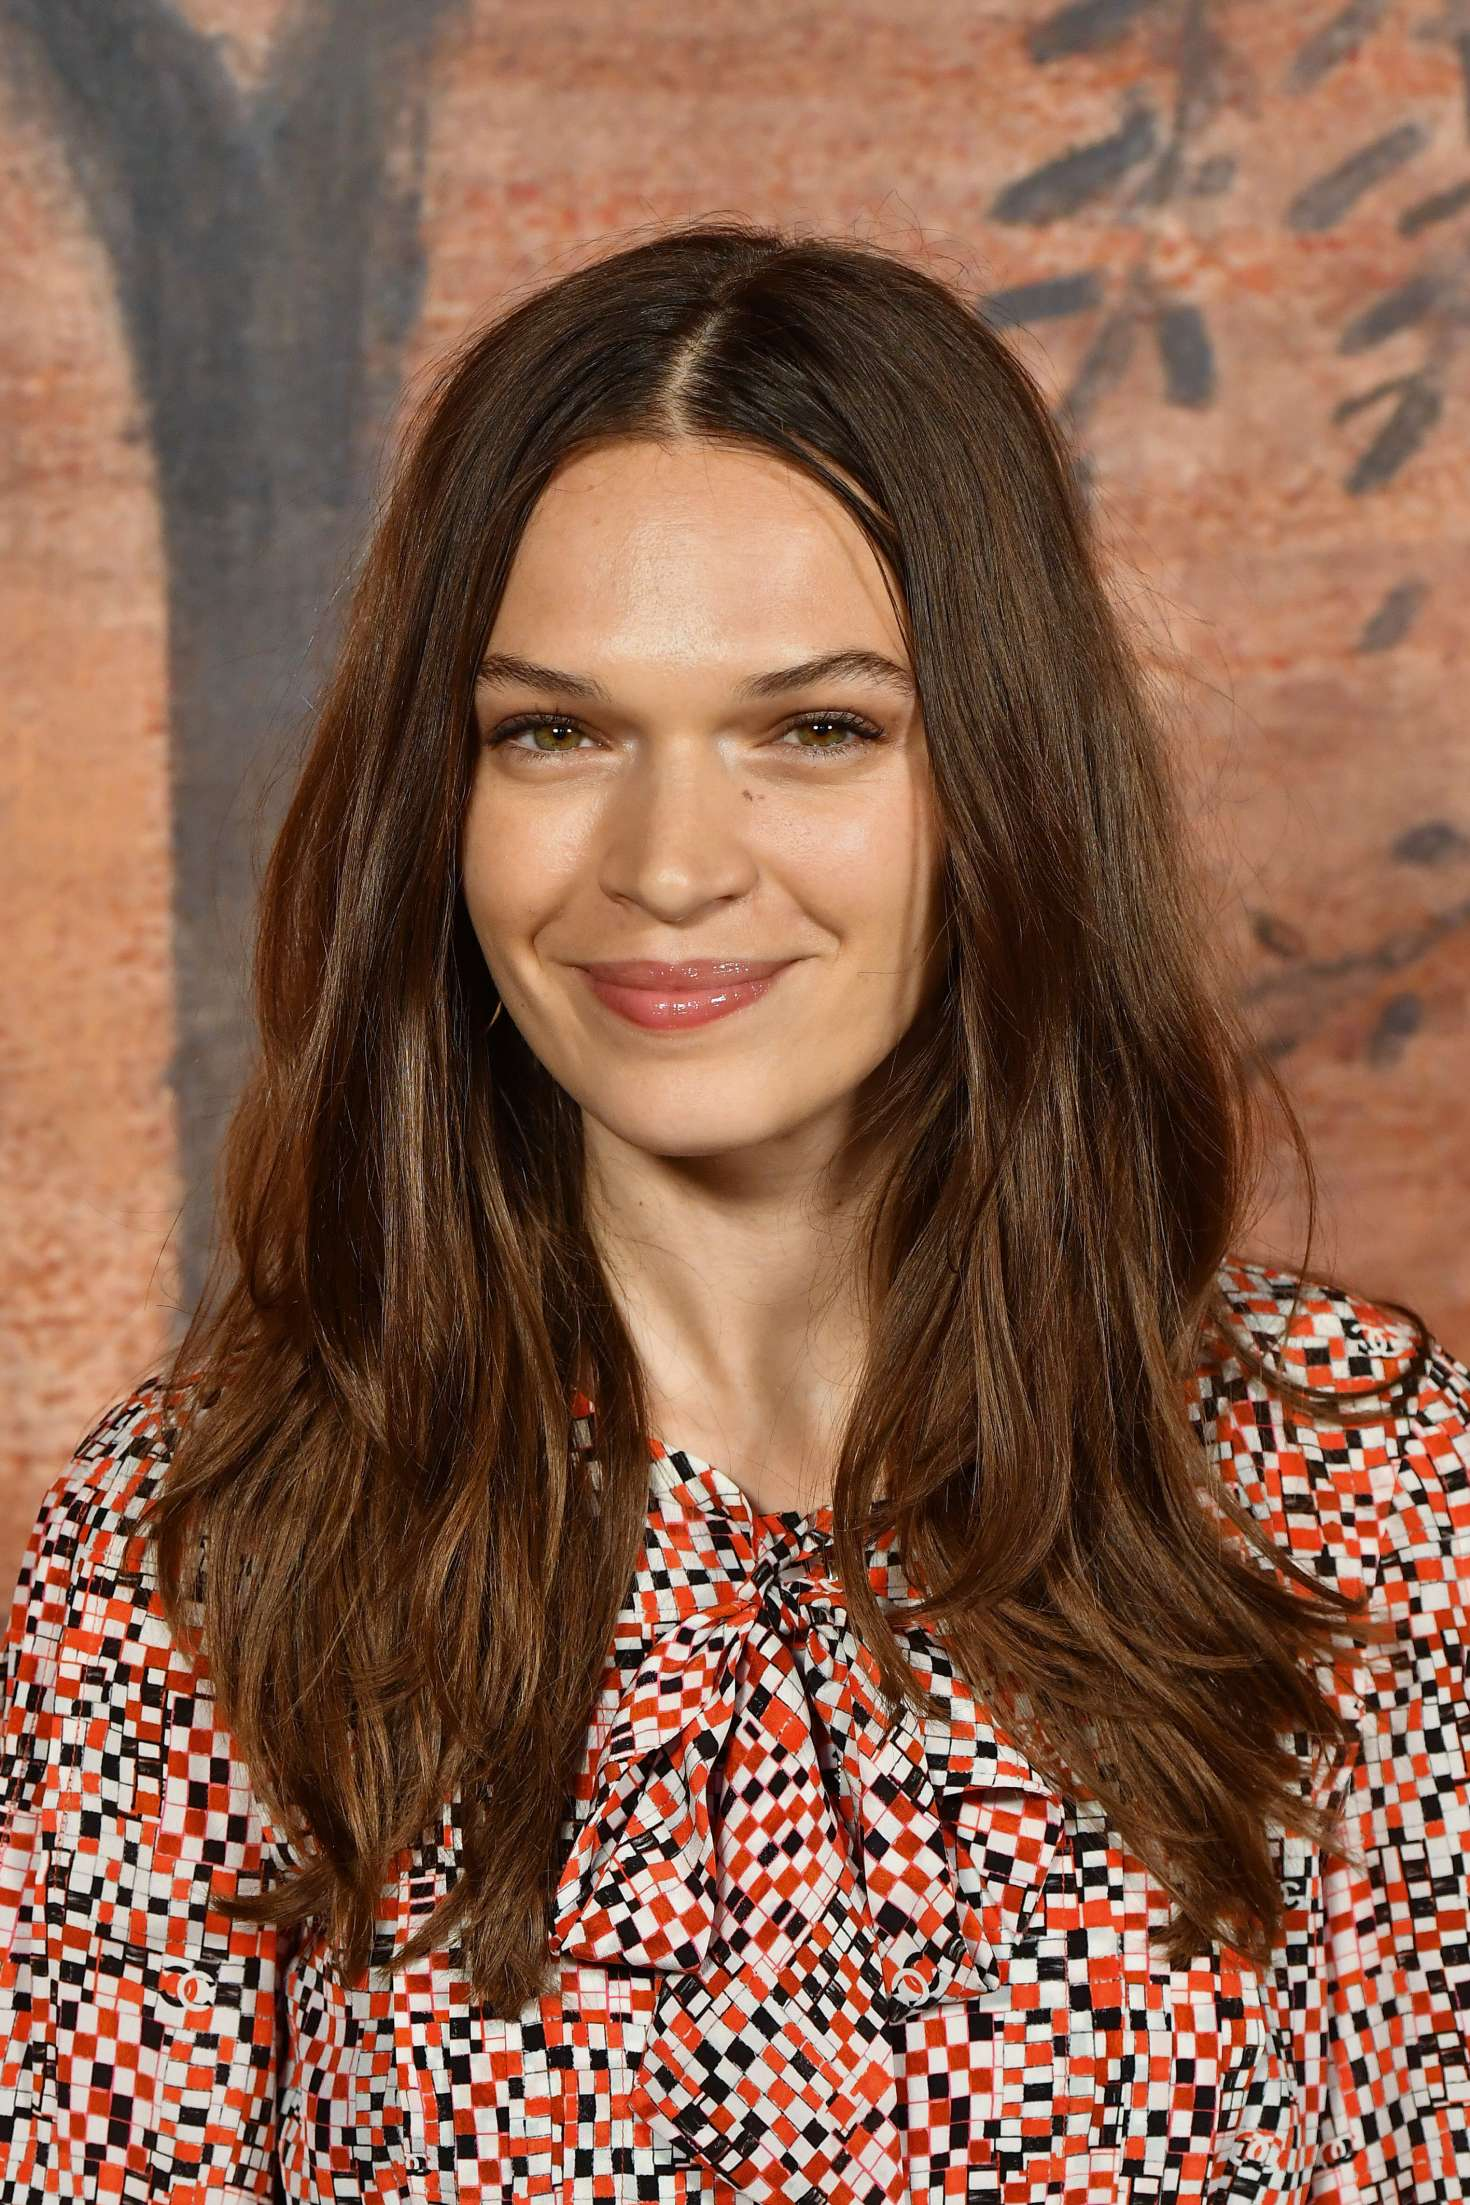 Anna brewster chanel cruise collection in paris france nude (83 photos)